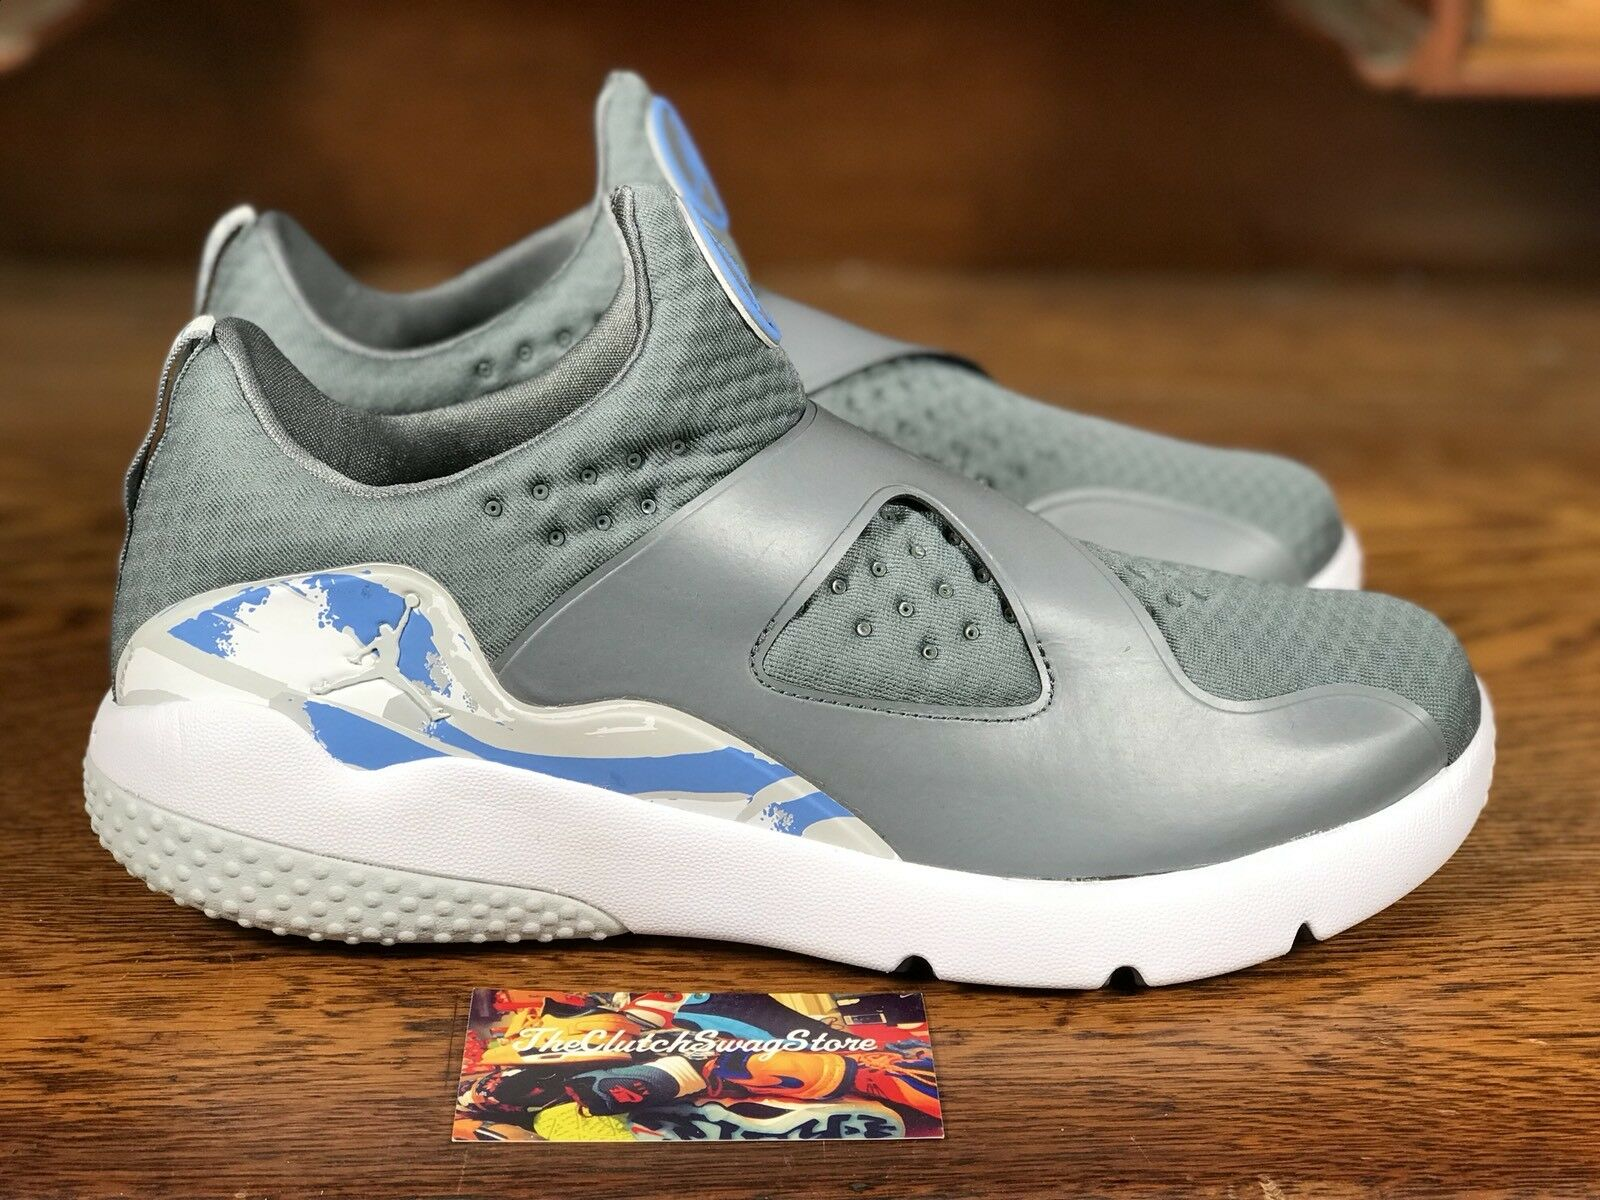 New Nike Air Jordan Trainer Essential Price reduction Mens Shoes Cool Grey Slip On The most popular shoes for men and women